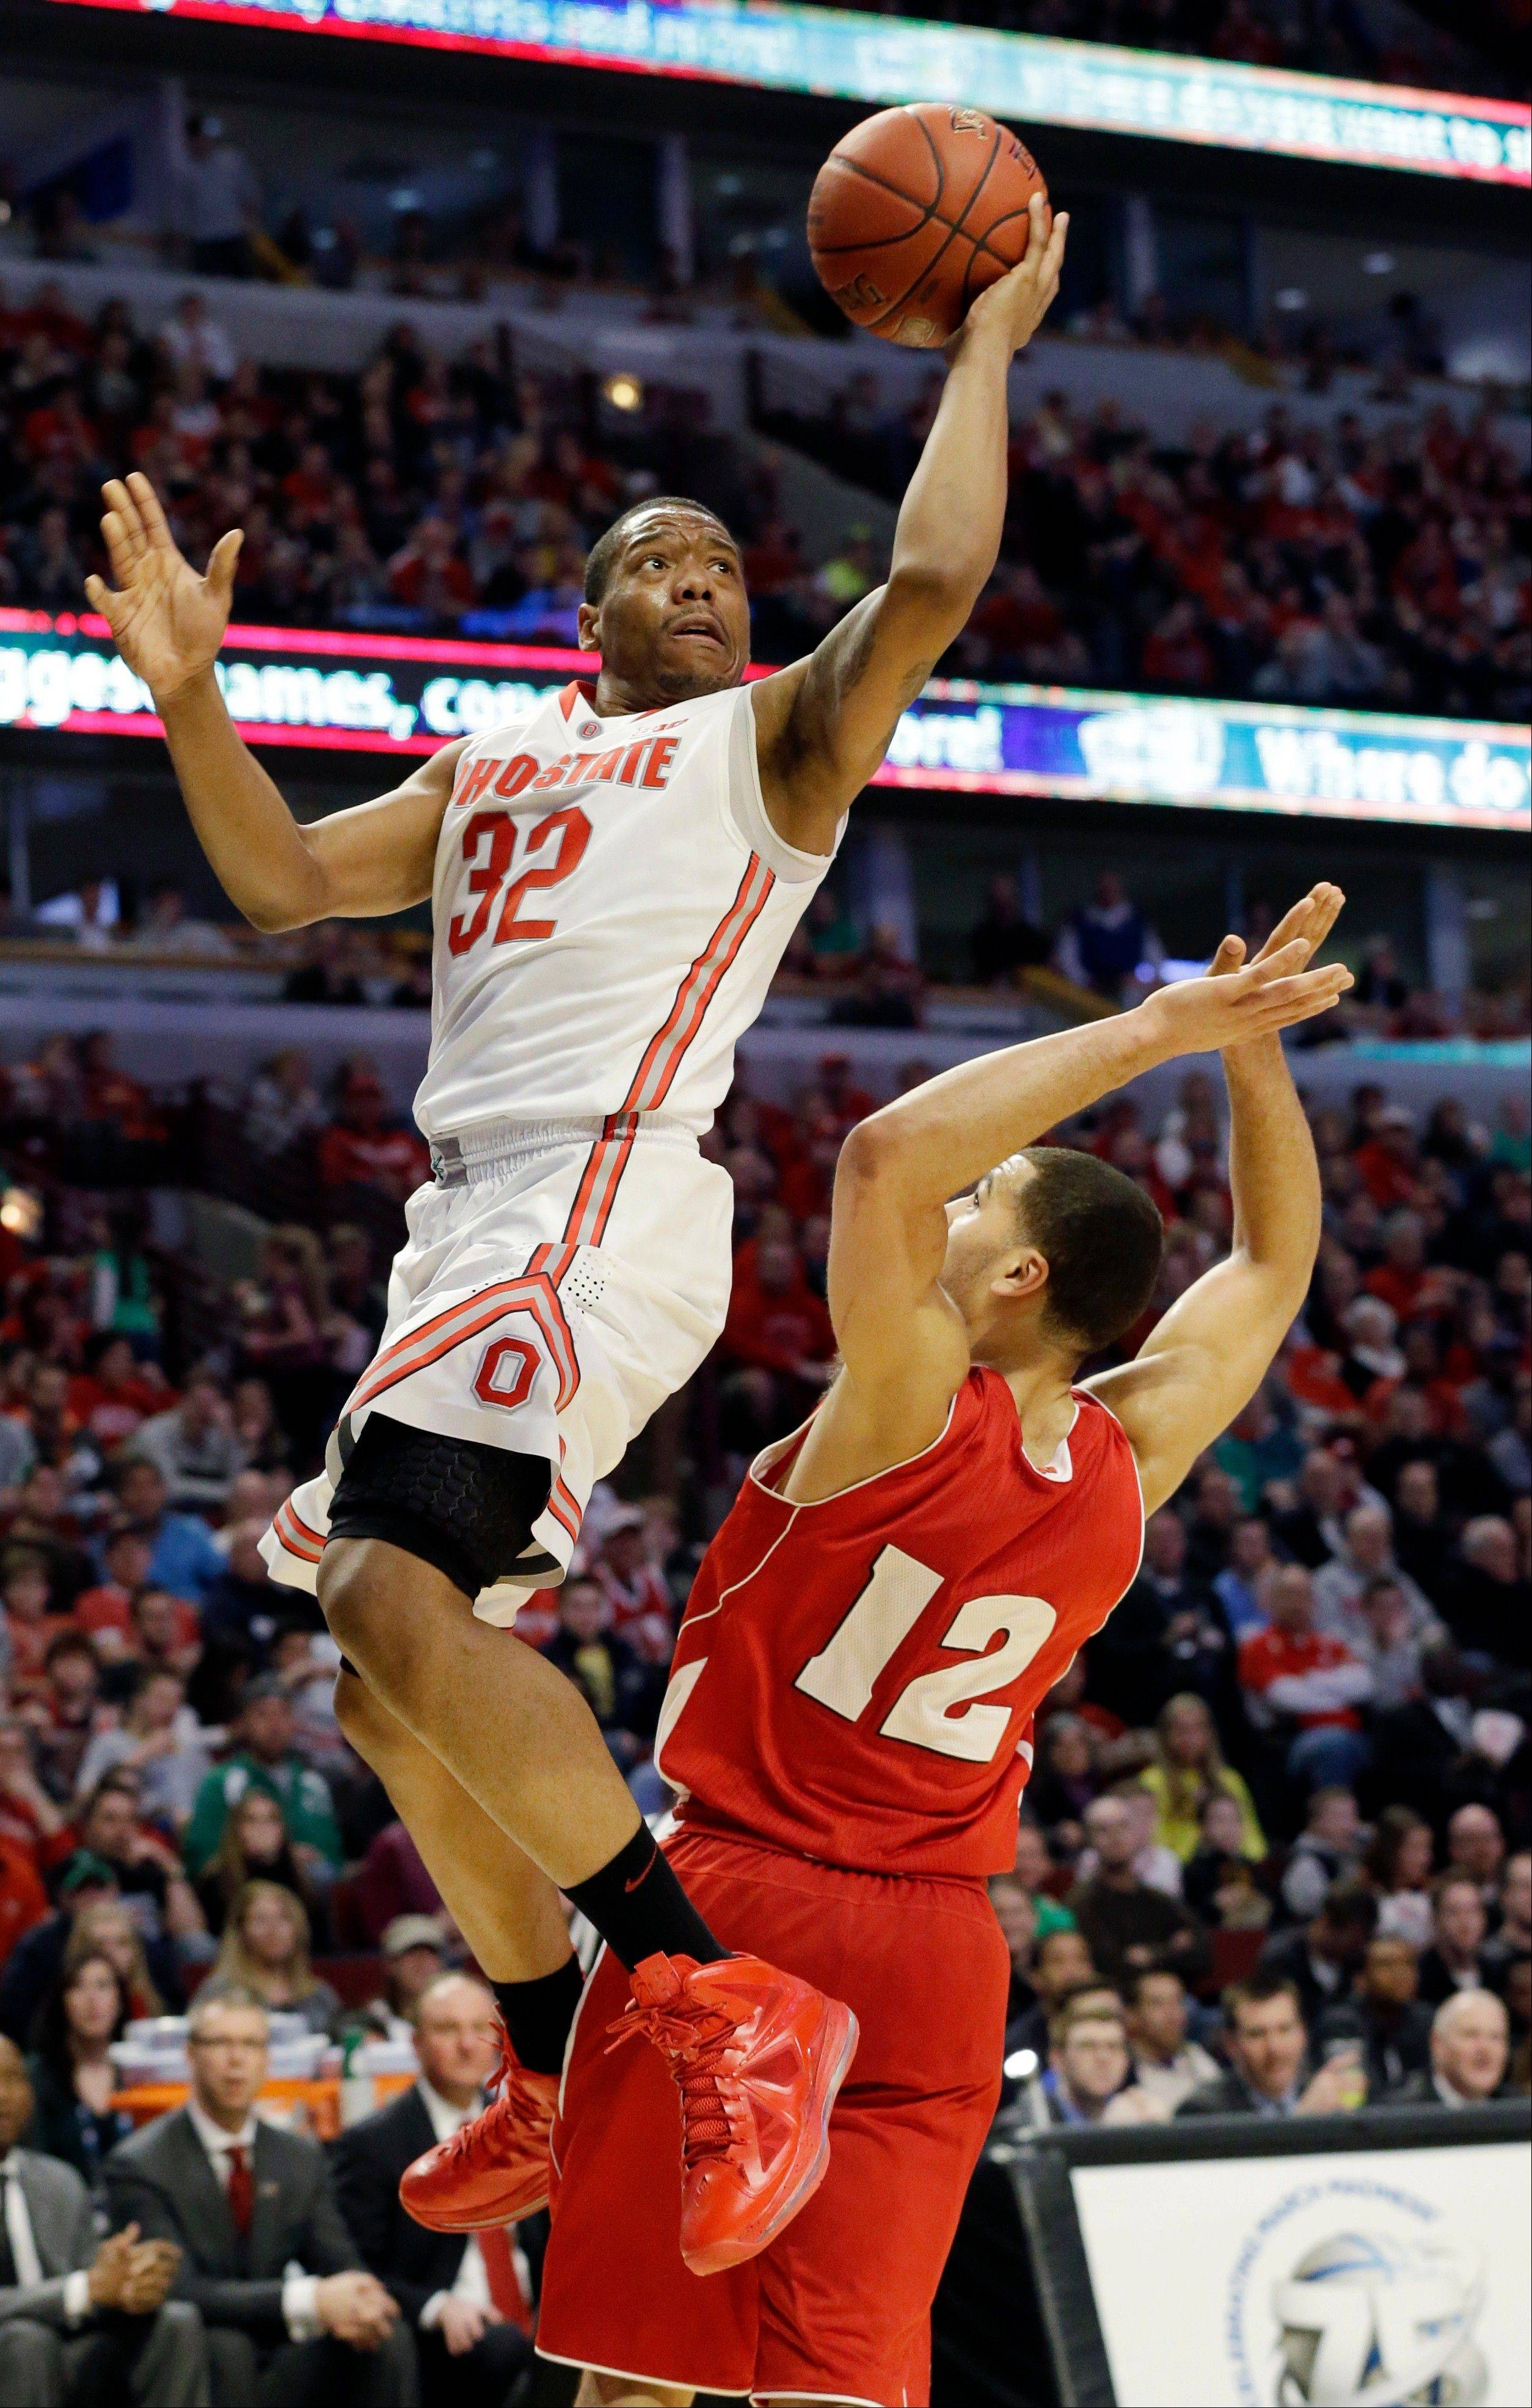 Ohio State guard Lenzelle Smith, Jr. goes up for a shot against Wisconsin guard Traevon Jackson during the second half of an NCAA college basketball game in the championship of the Big Ten tournament Sunday, March 17, 2013, in Chicago.